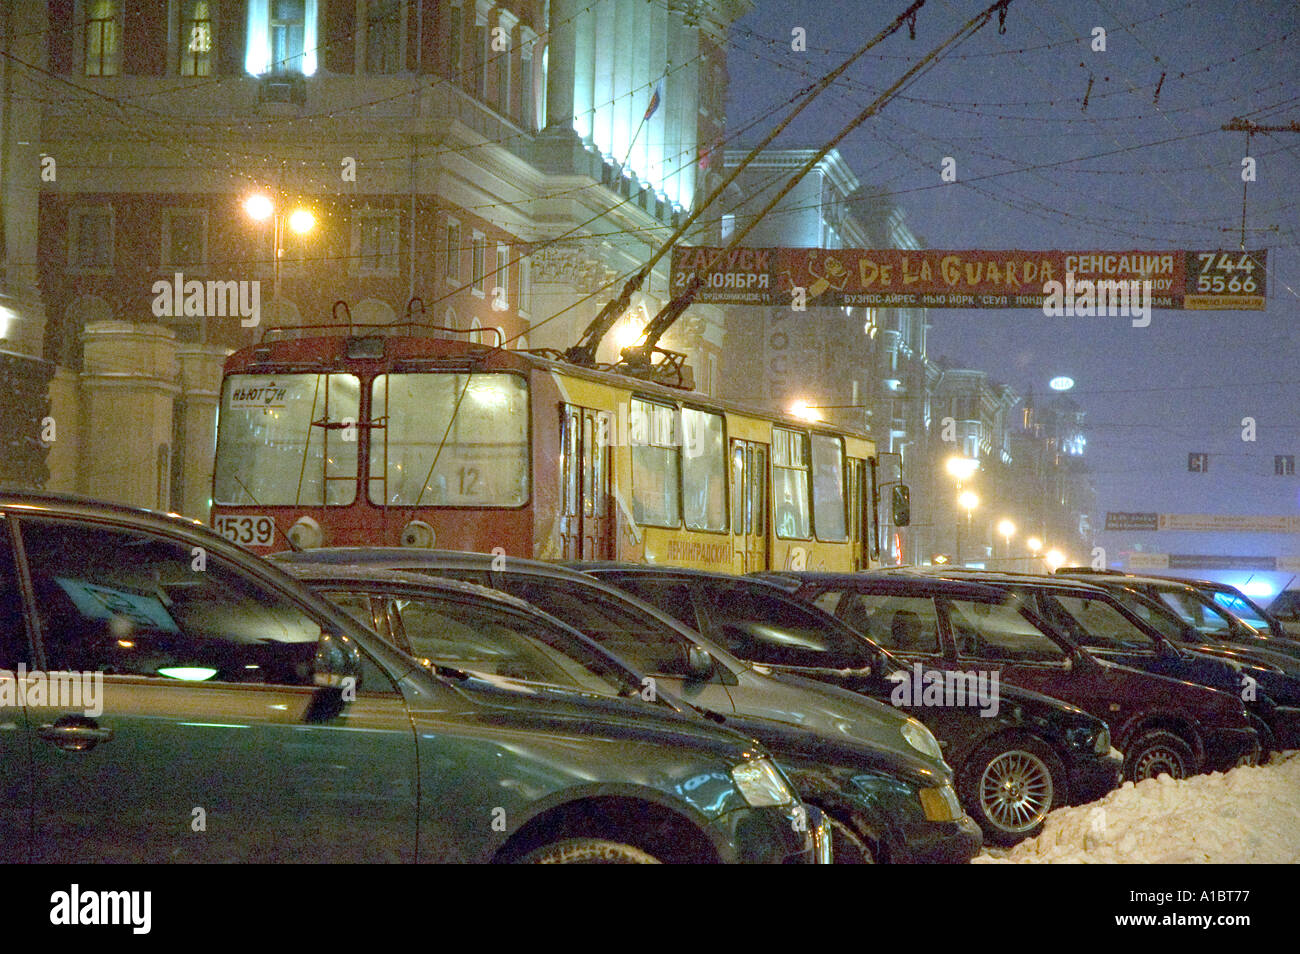 A night shot of a scene from Tverskaya Ulitsa in central Moscow - Stock Image